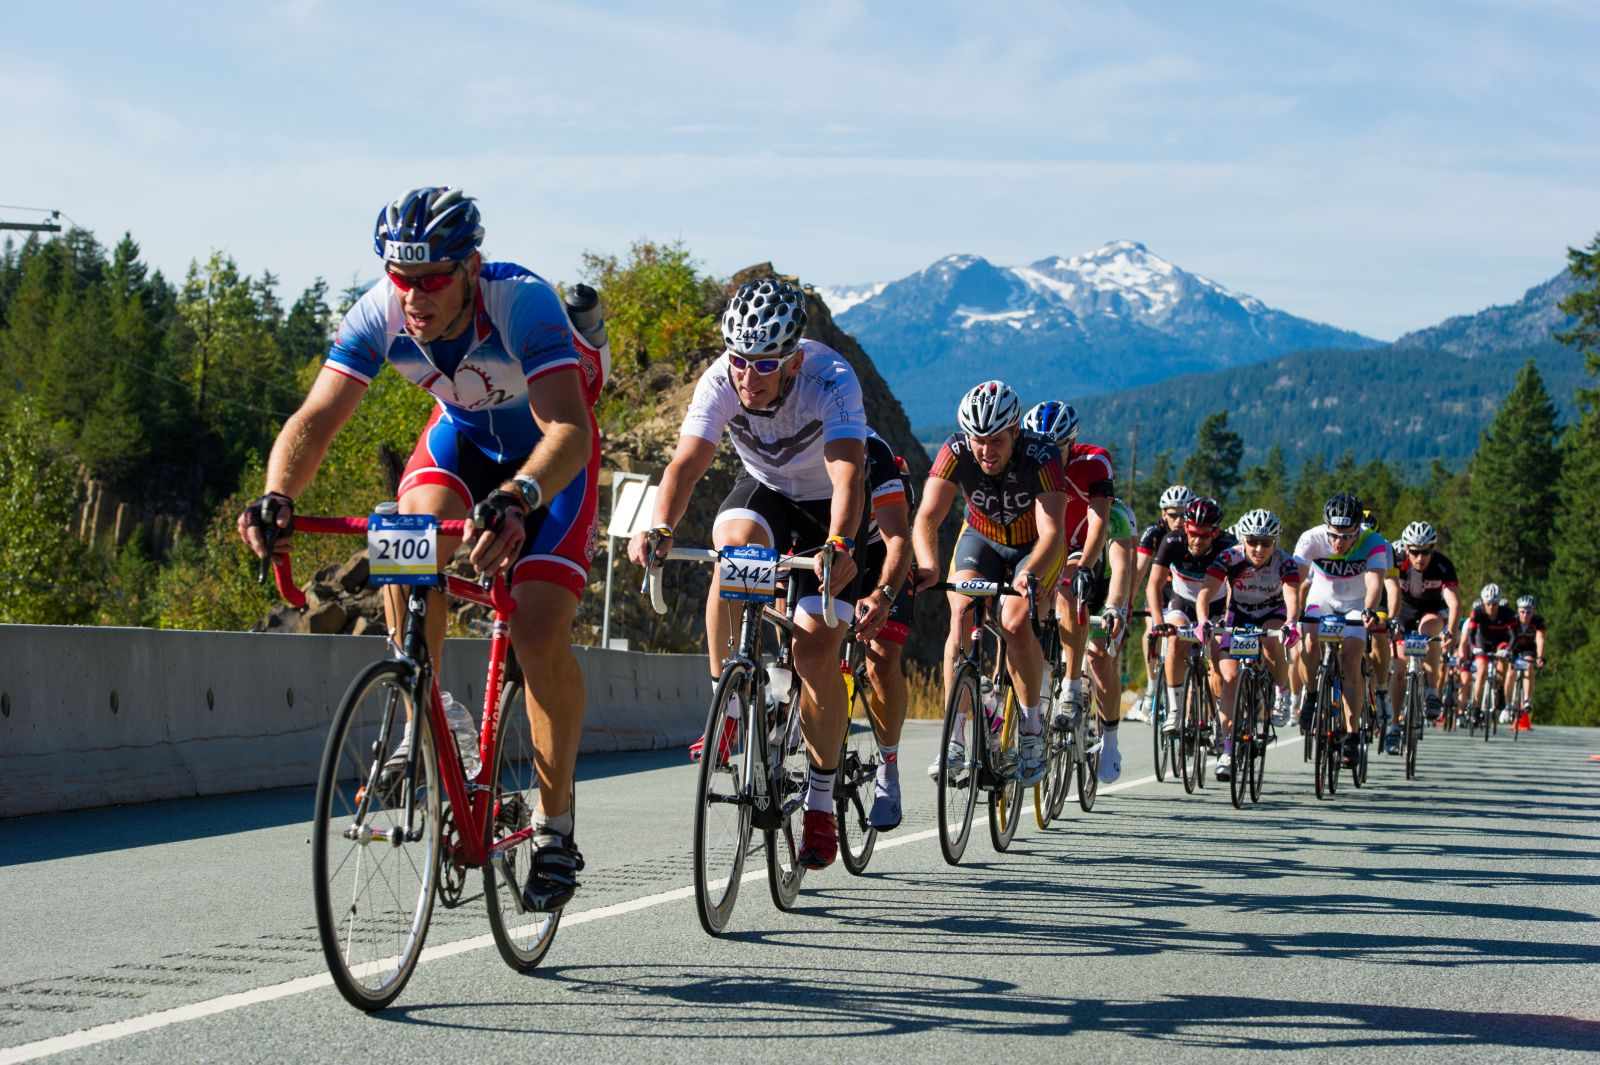 RBC Granfondo bike route: Vancouver to Whistler